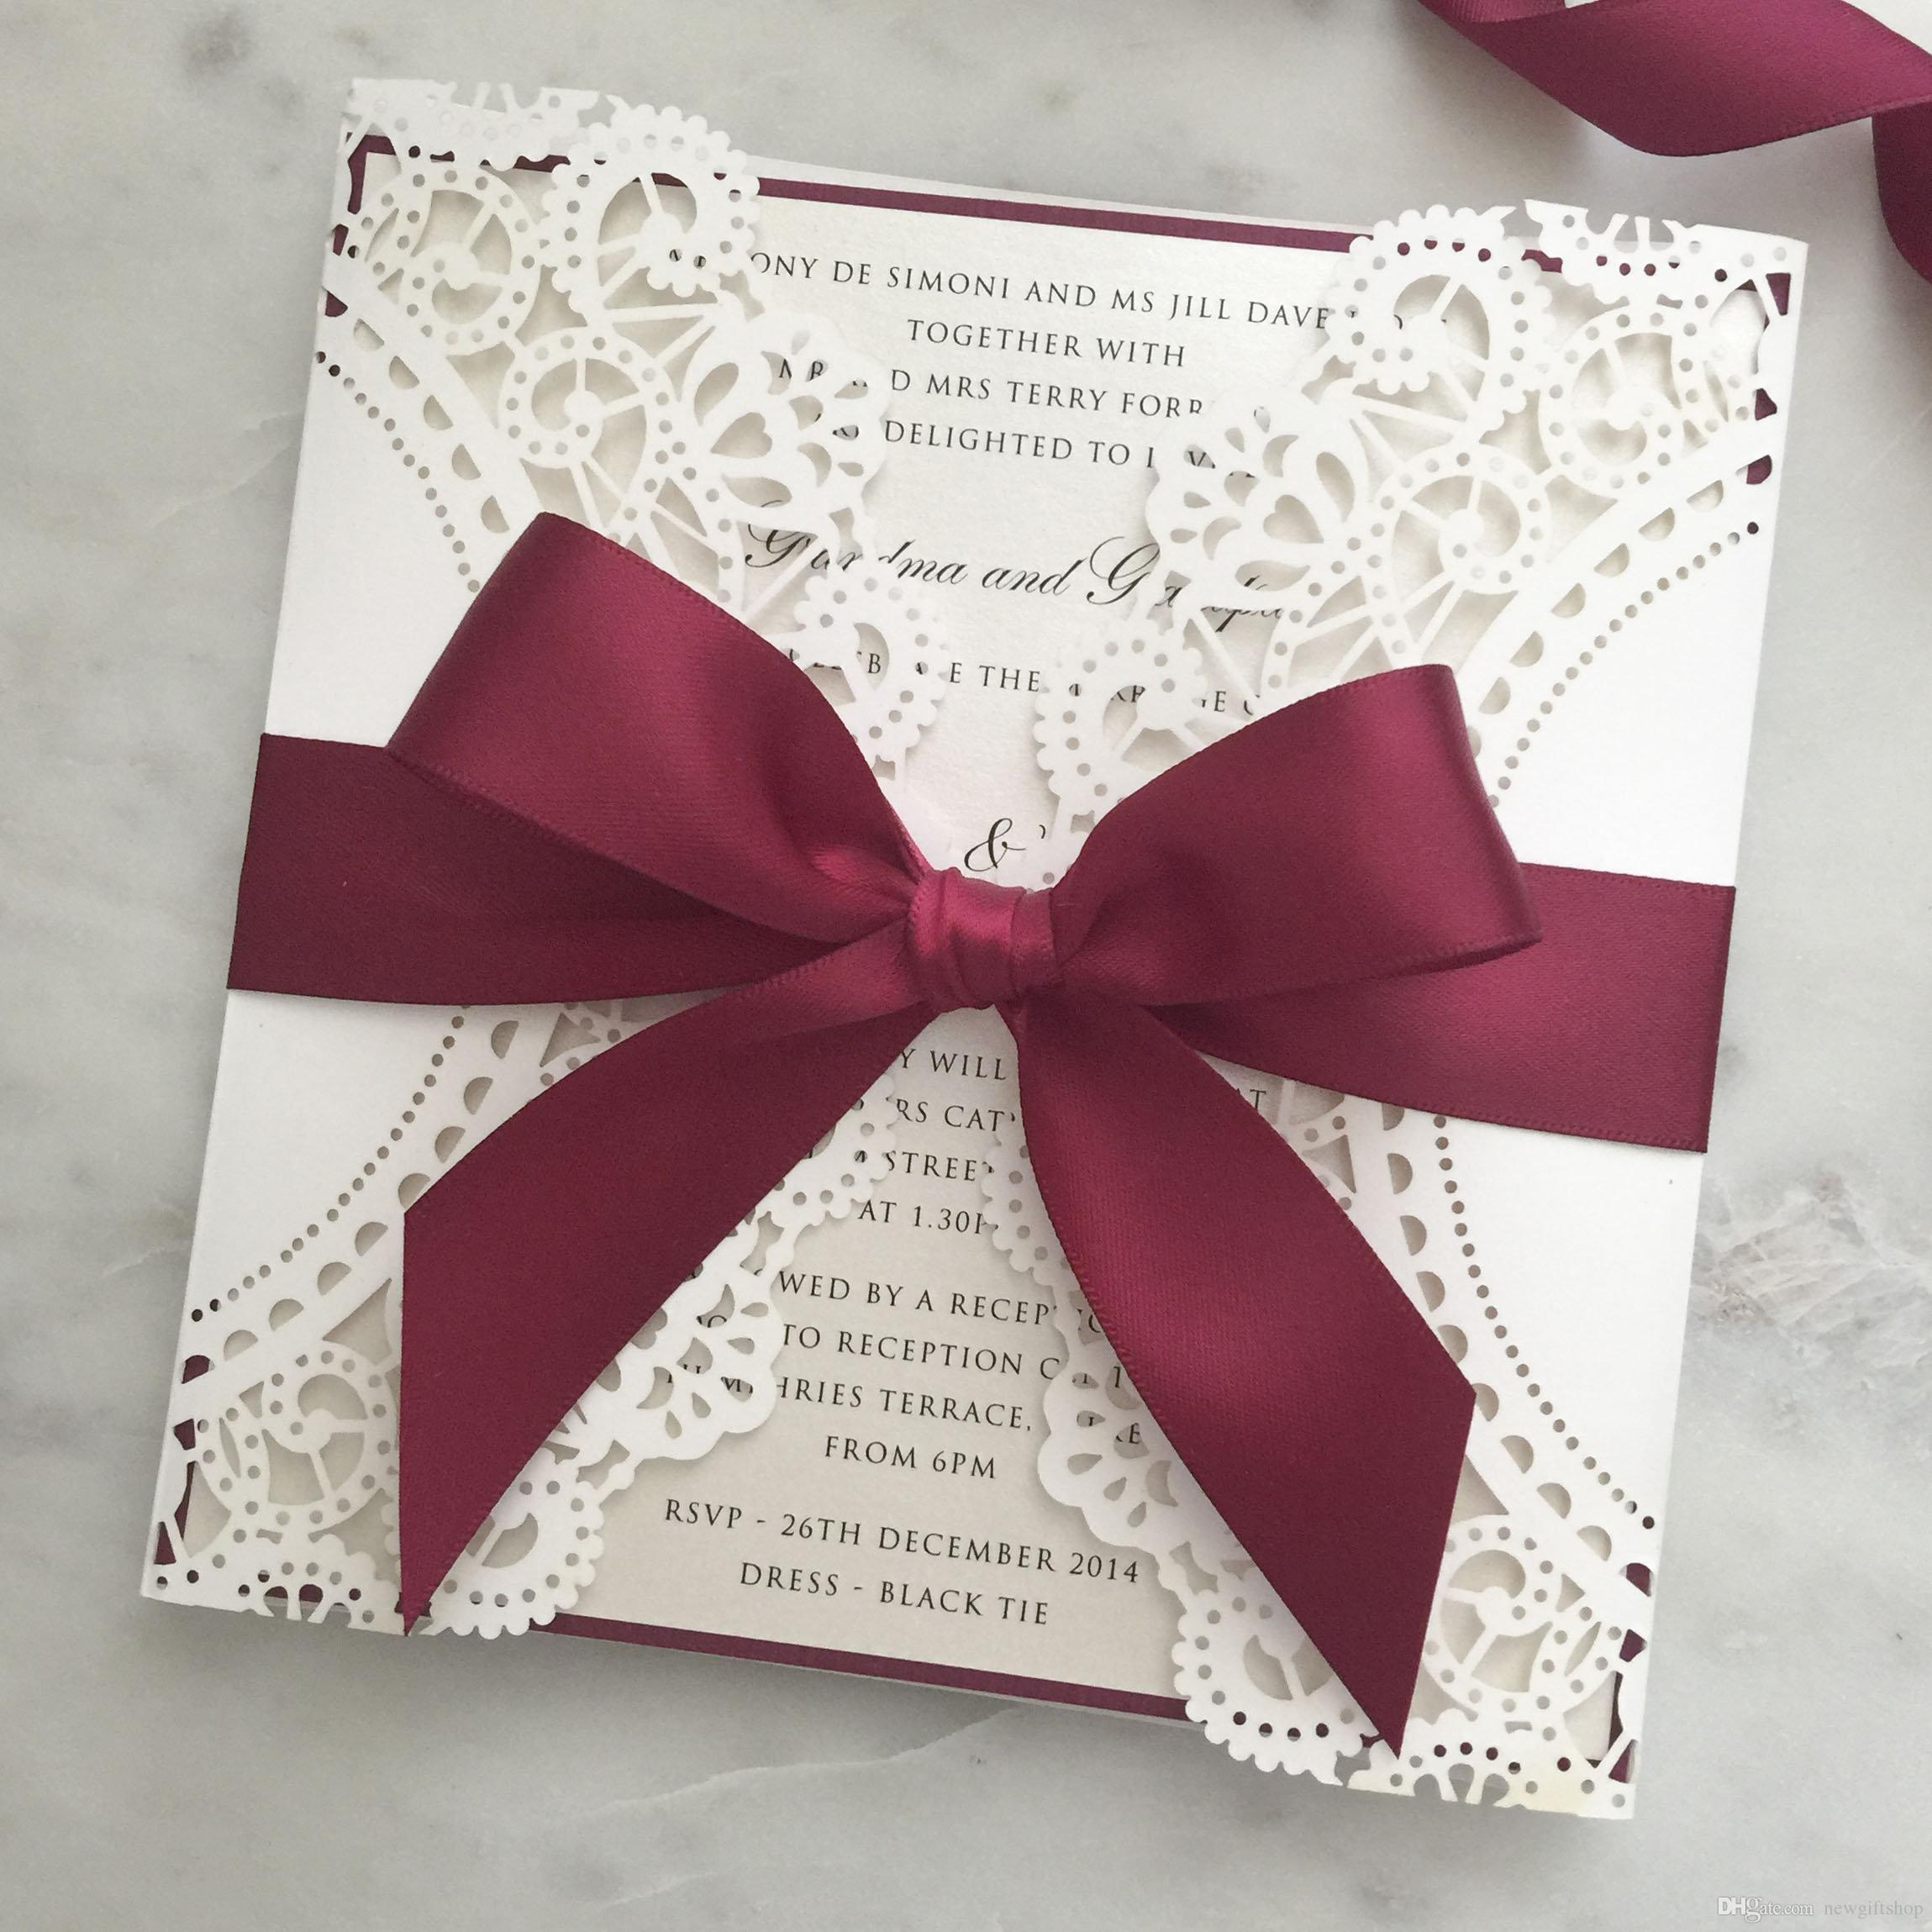 2019 Ivory Shimmy Wedding Invitation with Burgundy Ribbon, DIY ...